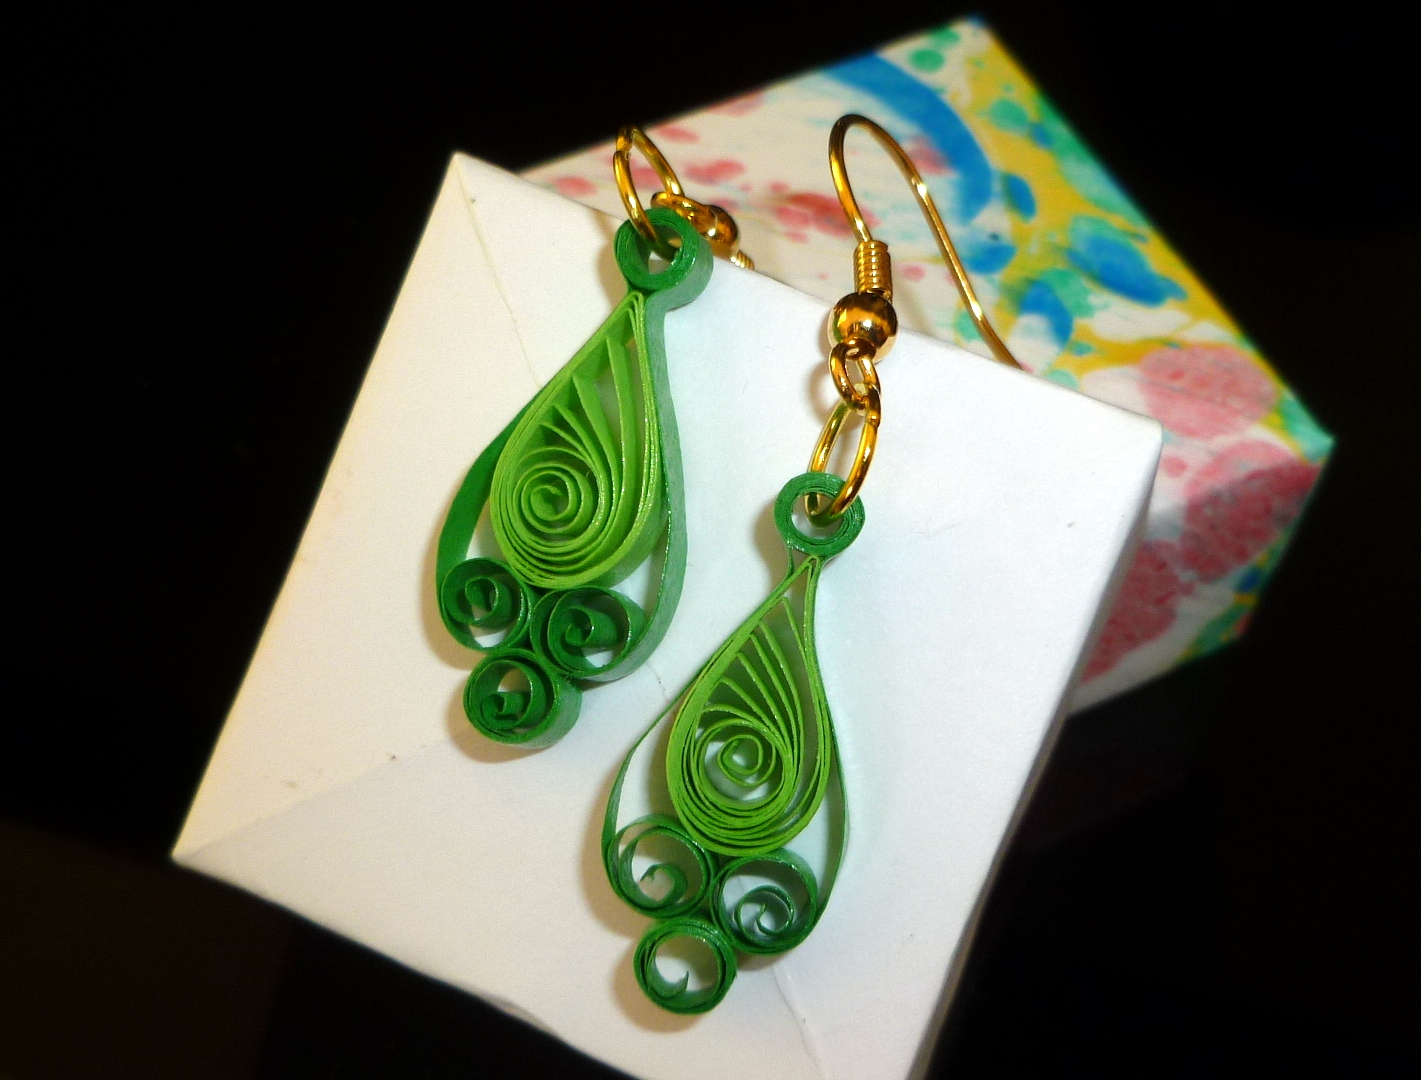 Quilling Earrings Designs Latest : Quilled Earrings - Fern and Forest Green